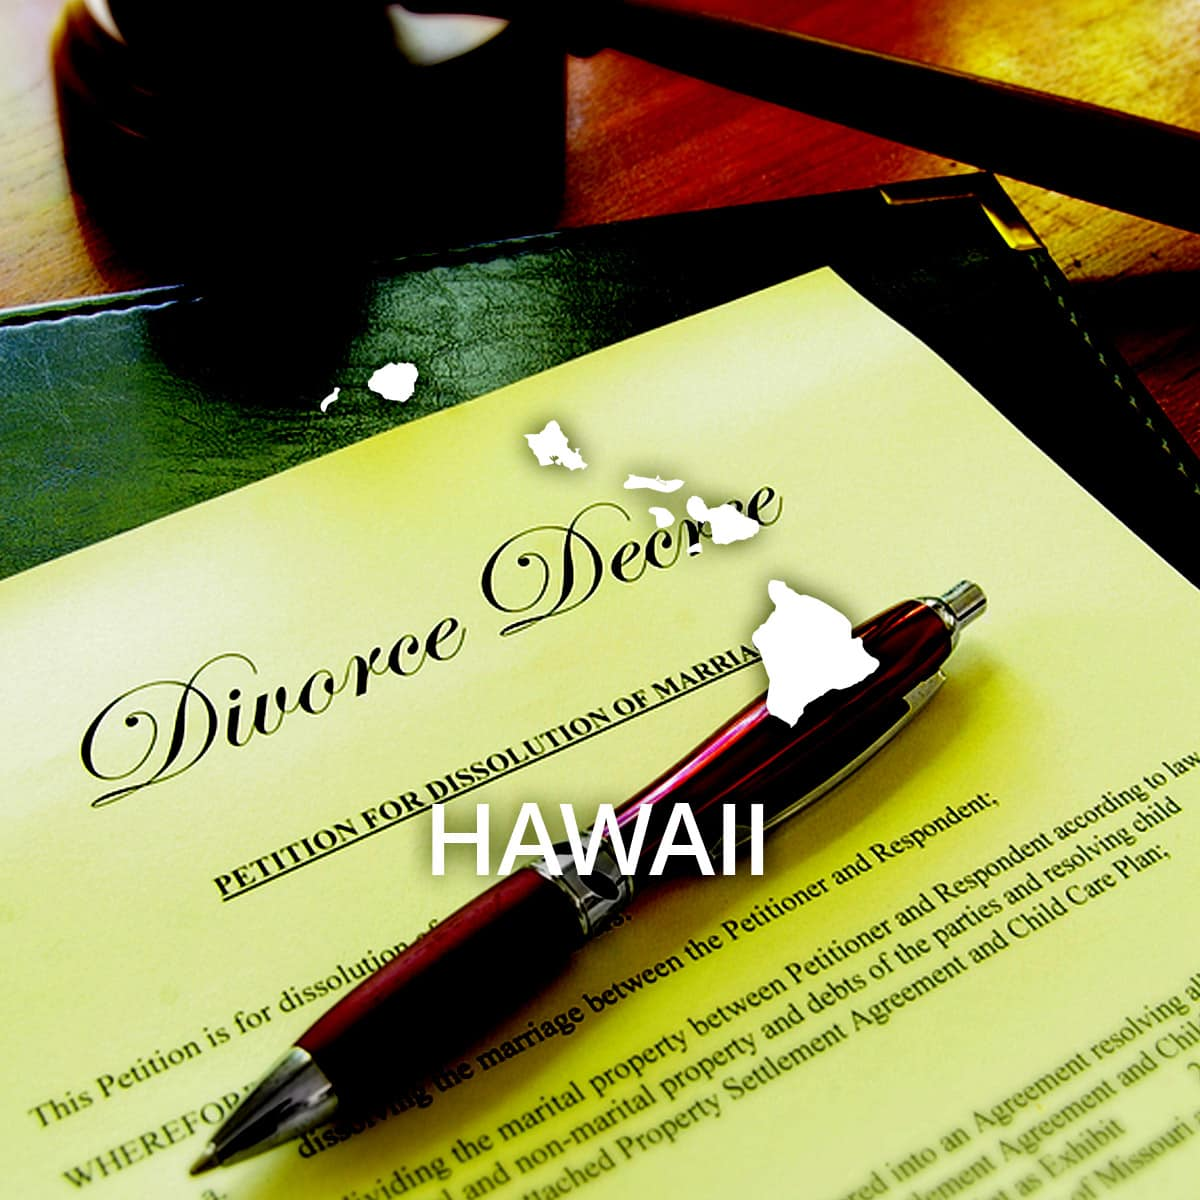 Where to Obtain a Hawaii Divorce Certificate